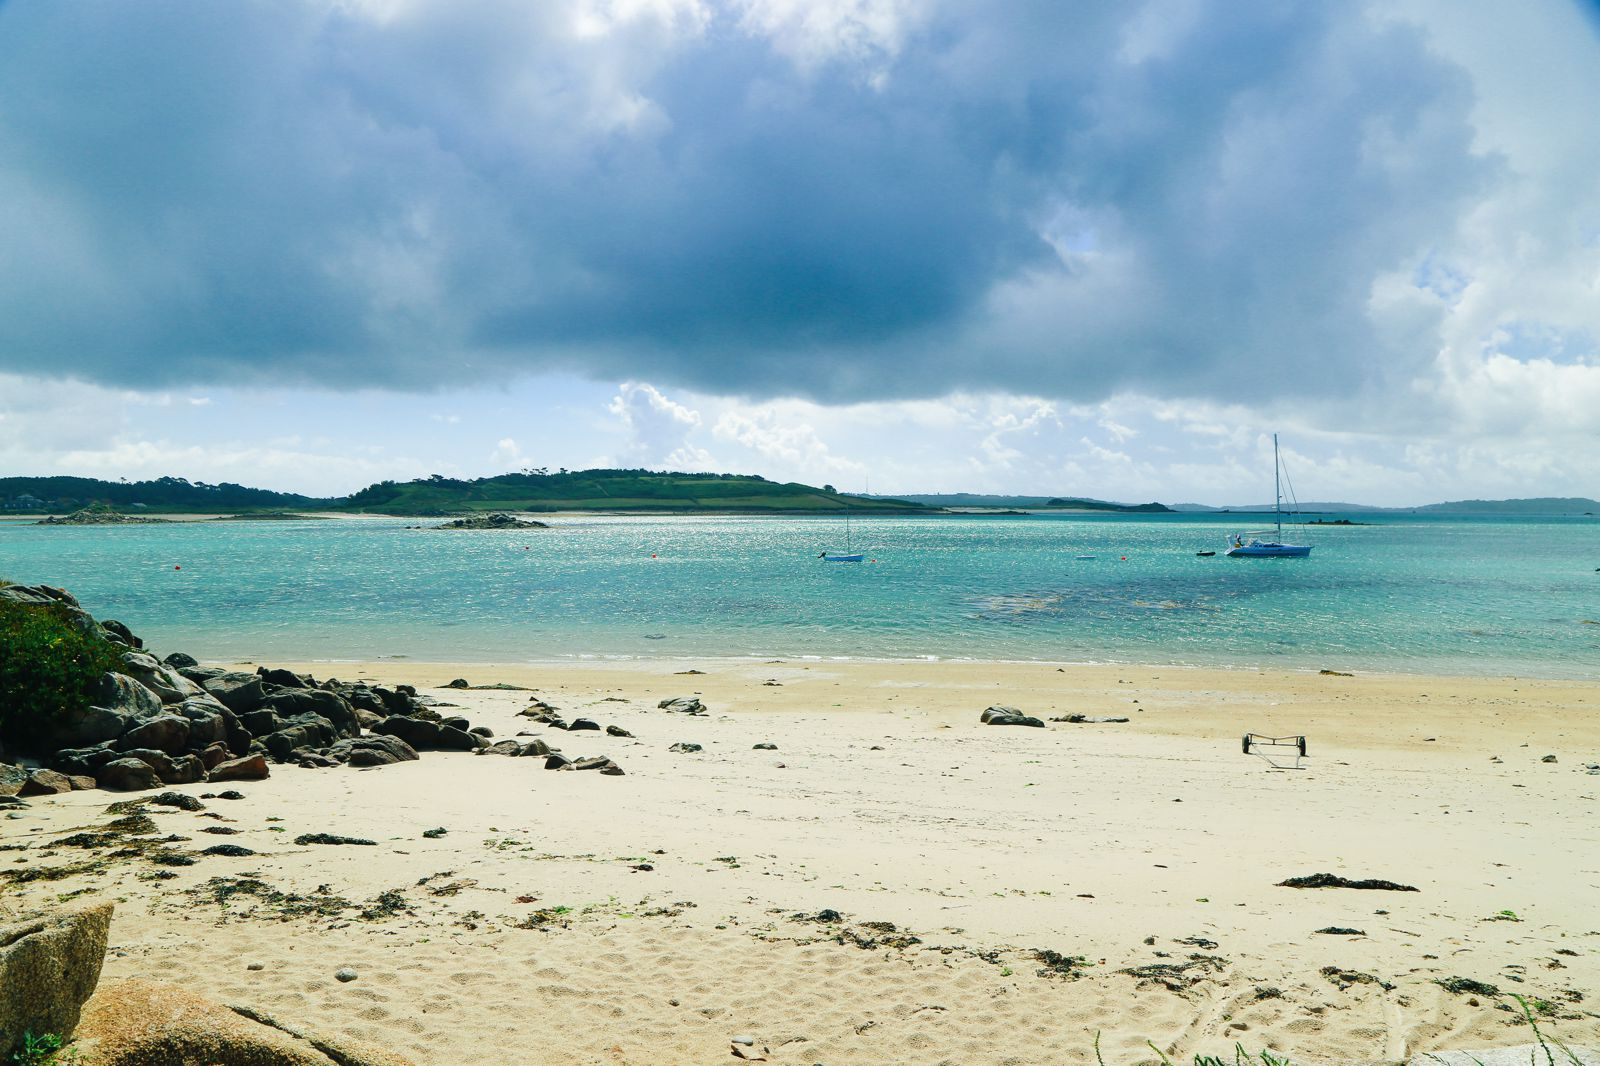 Kayaking in Bryher, Honesty Boxes and Tropical Island Hues... In Bryher Island, Isles of Scilly, UK (6)